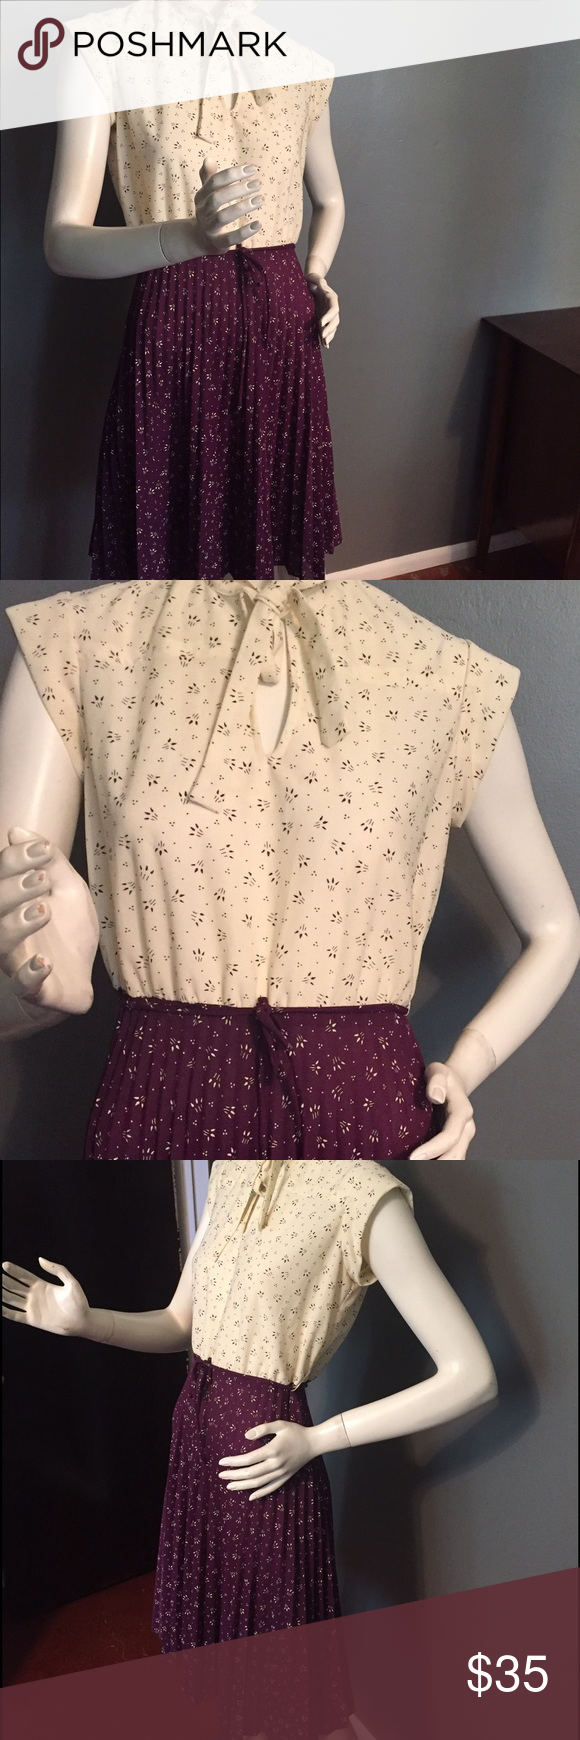 """Beautiful vintage dress Beautiful vintage dress. Accordion pleats in the skirted portion, ivory and plum print. No tags, fabric feels like polyester. Length 39"""", waist 30"""" has a slight stretch up to 2 more inches, bust 38"""" Vintage Dresses"""